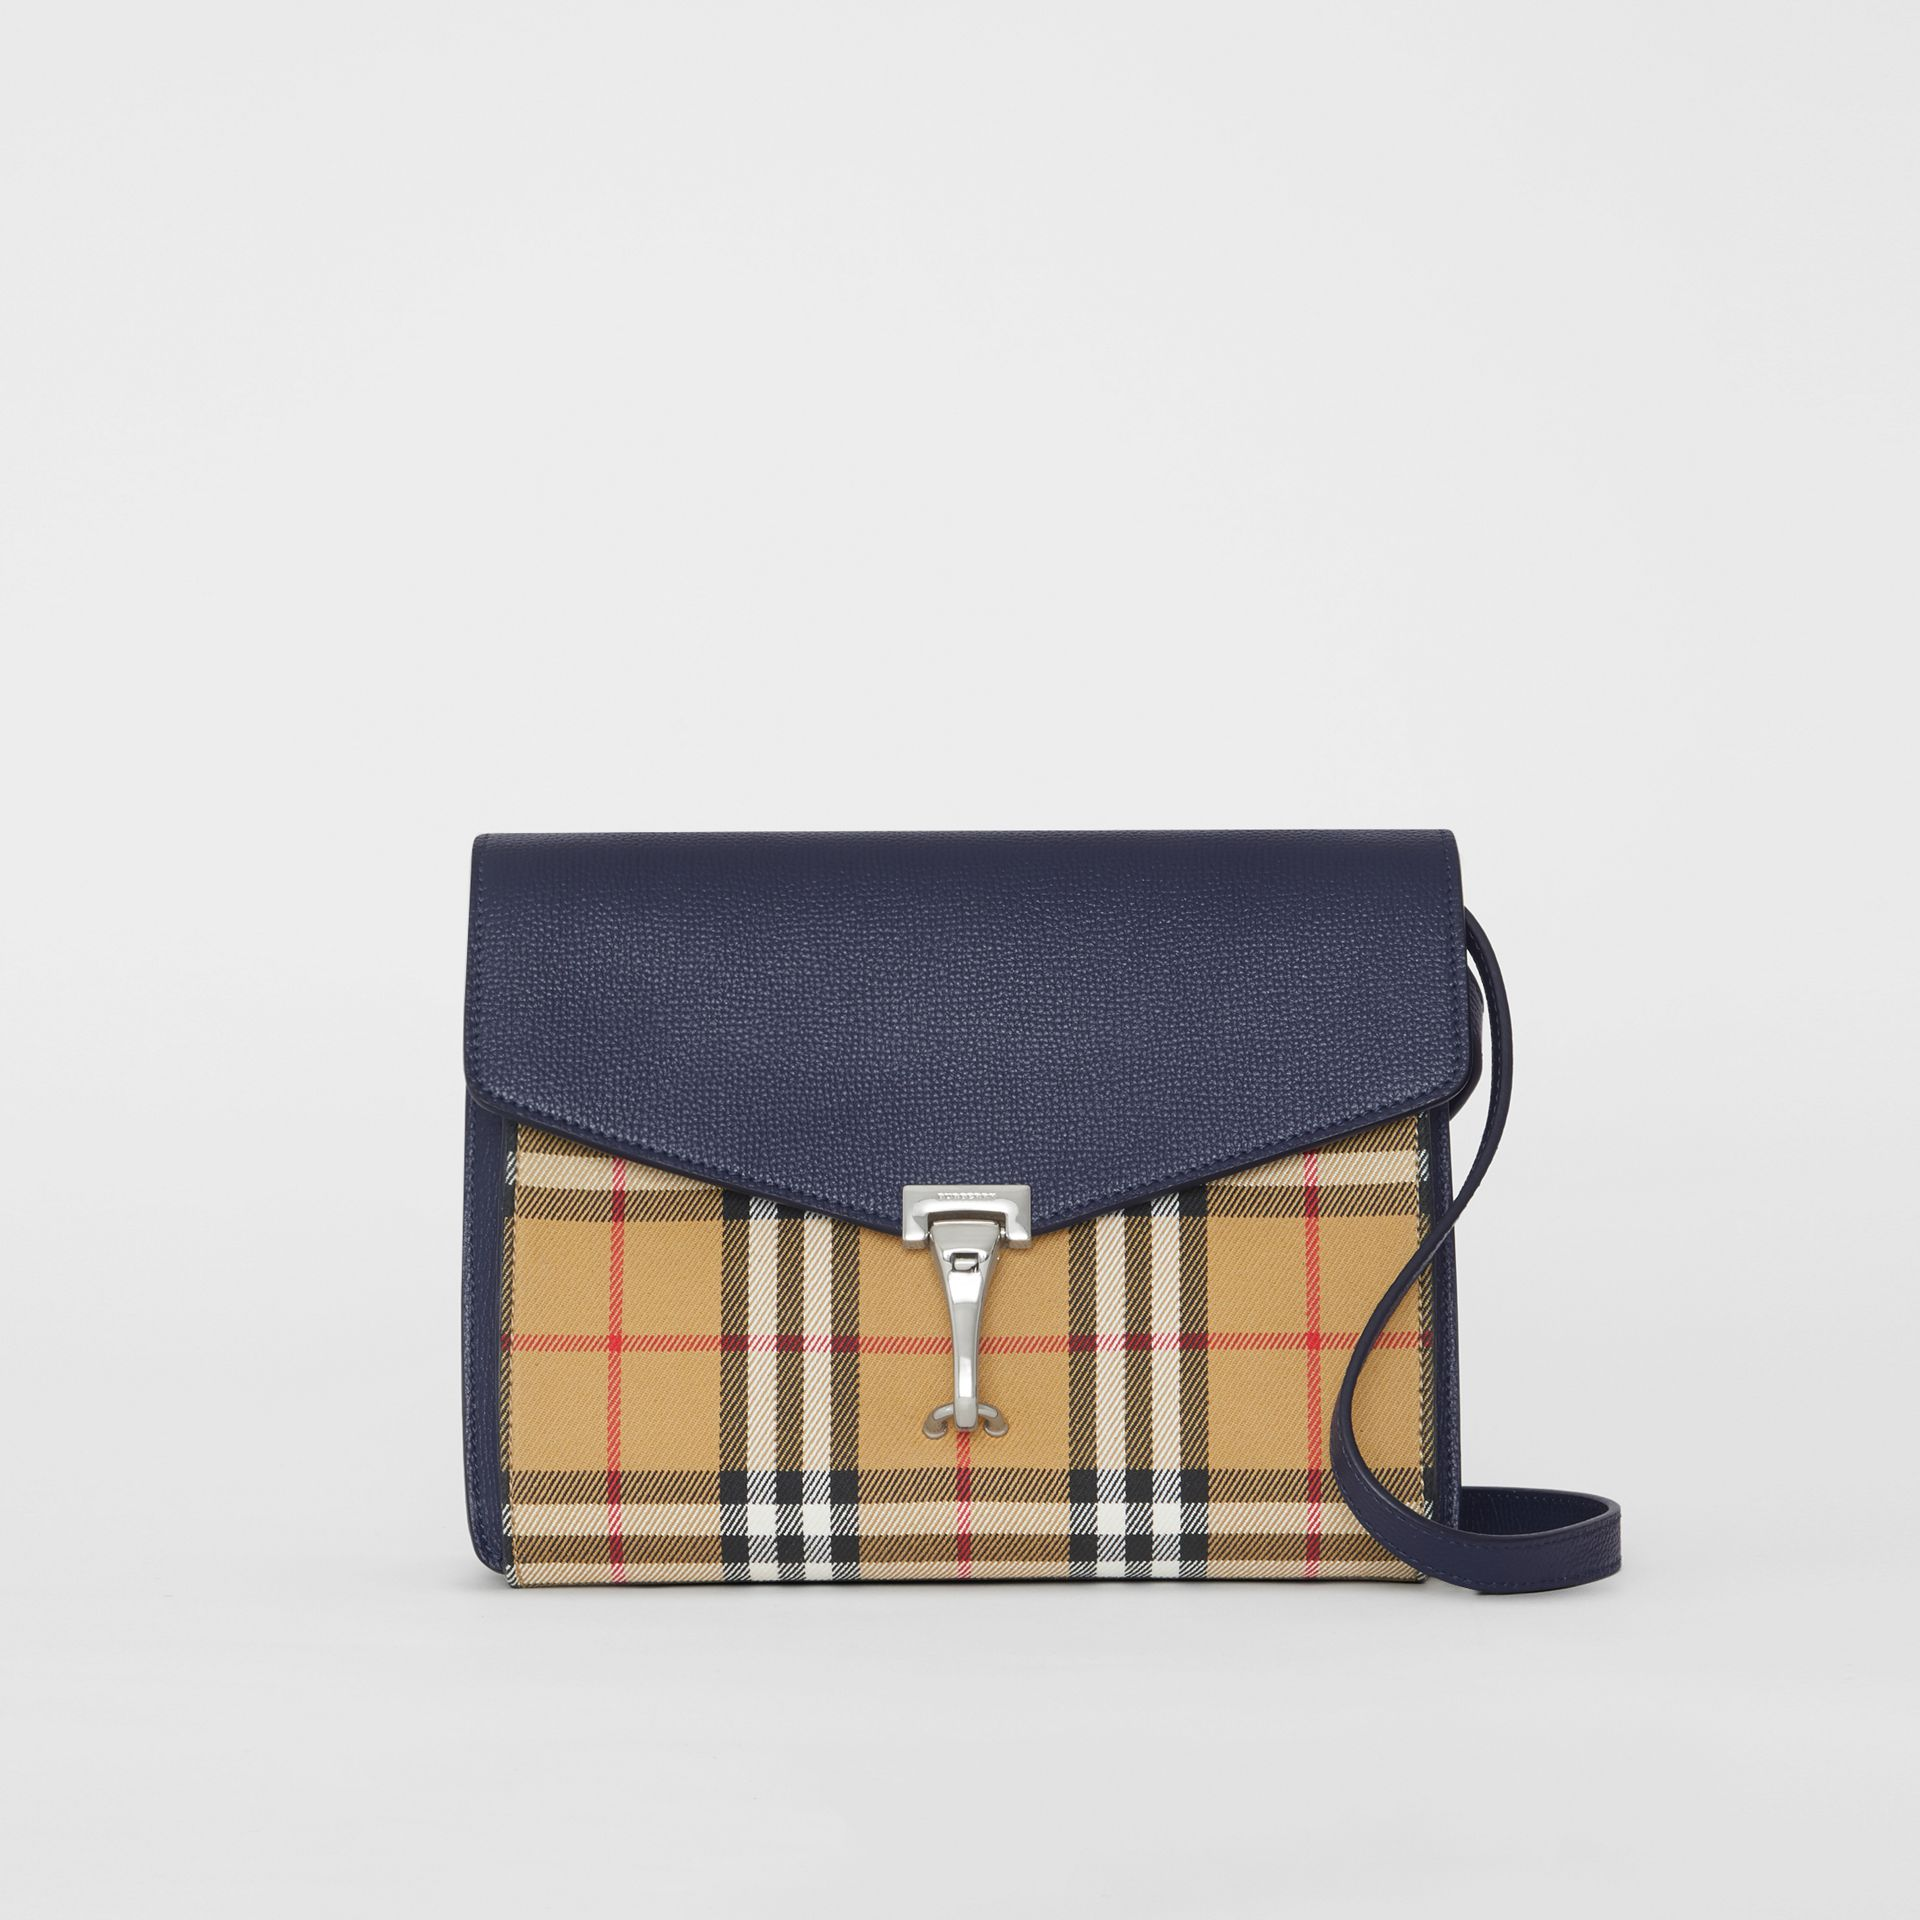 Small Vintage Check and Leather Crossbody Bag in Regency Blue - Women | Burberry - gallery image 0